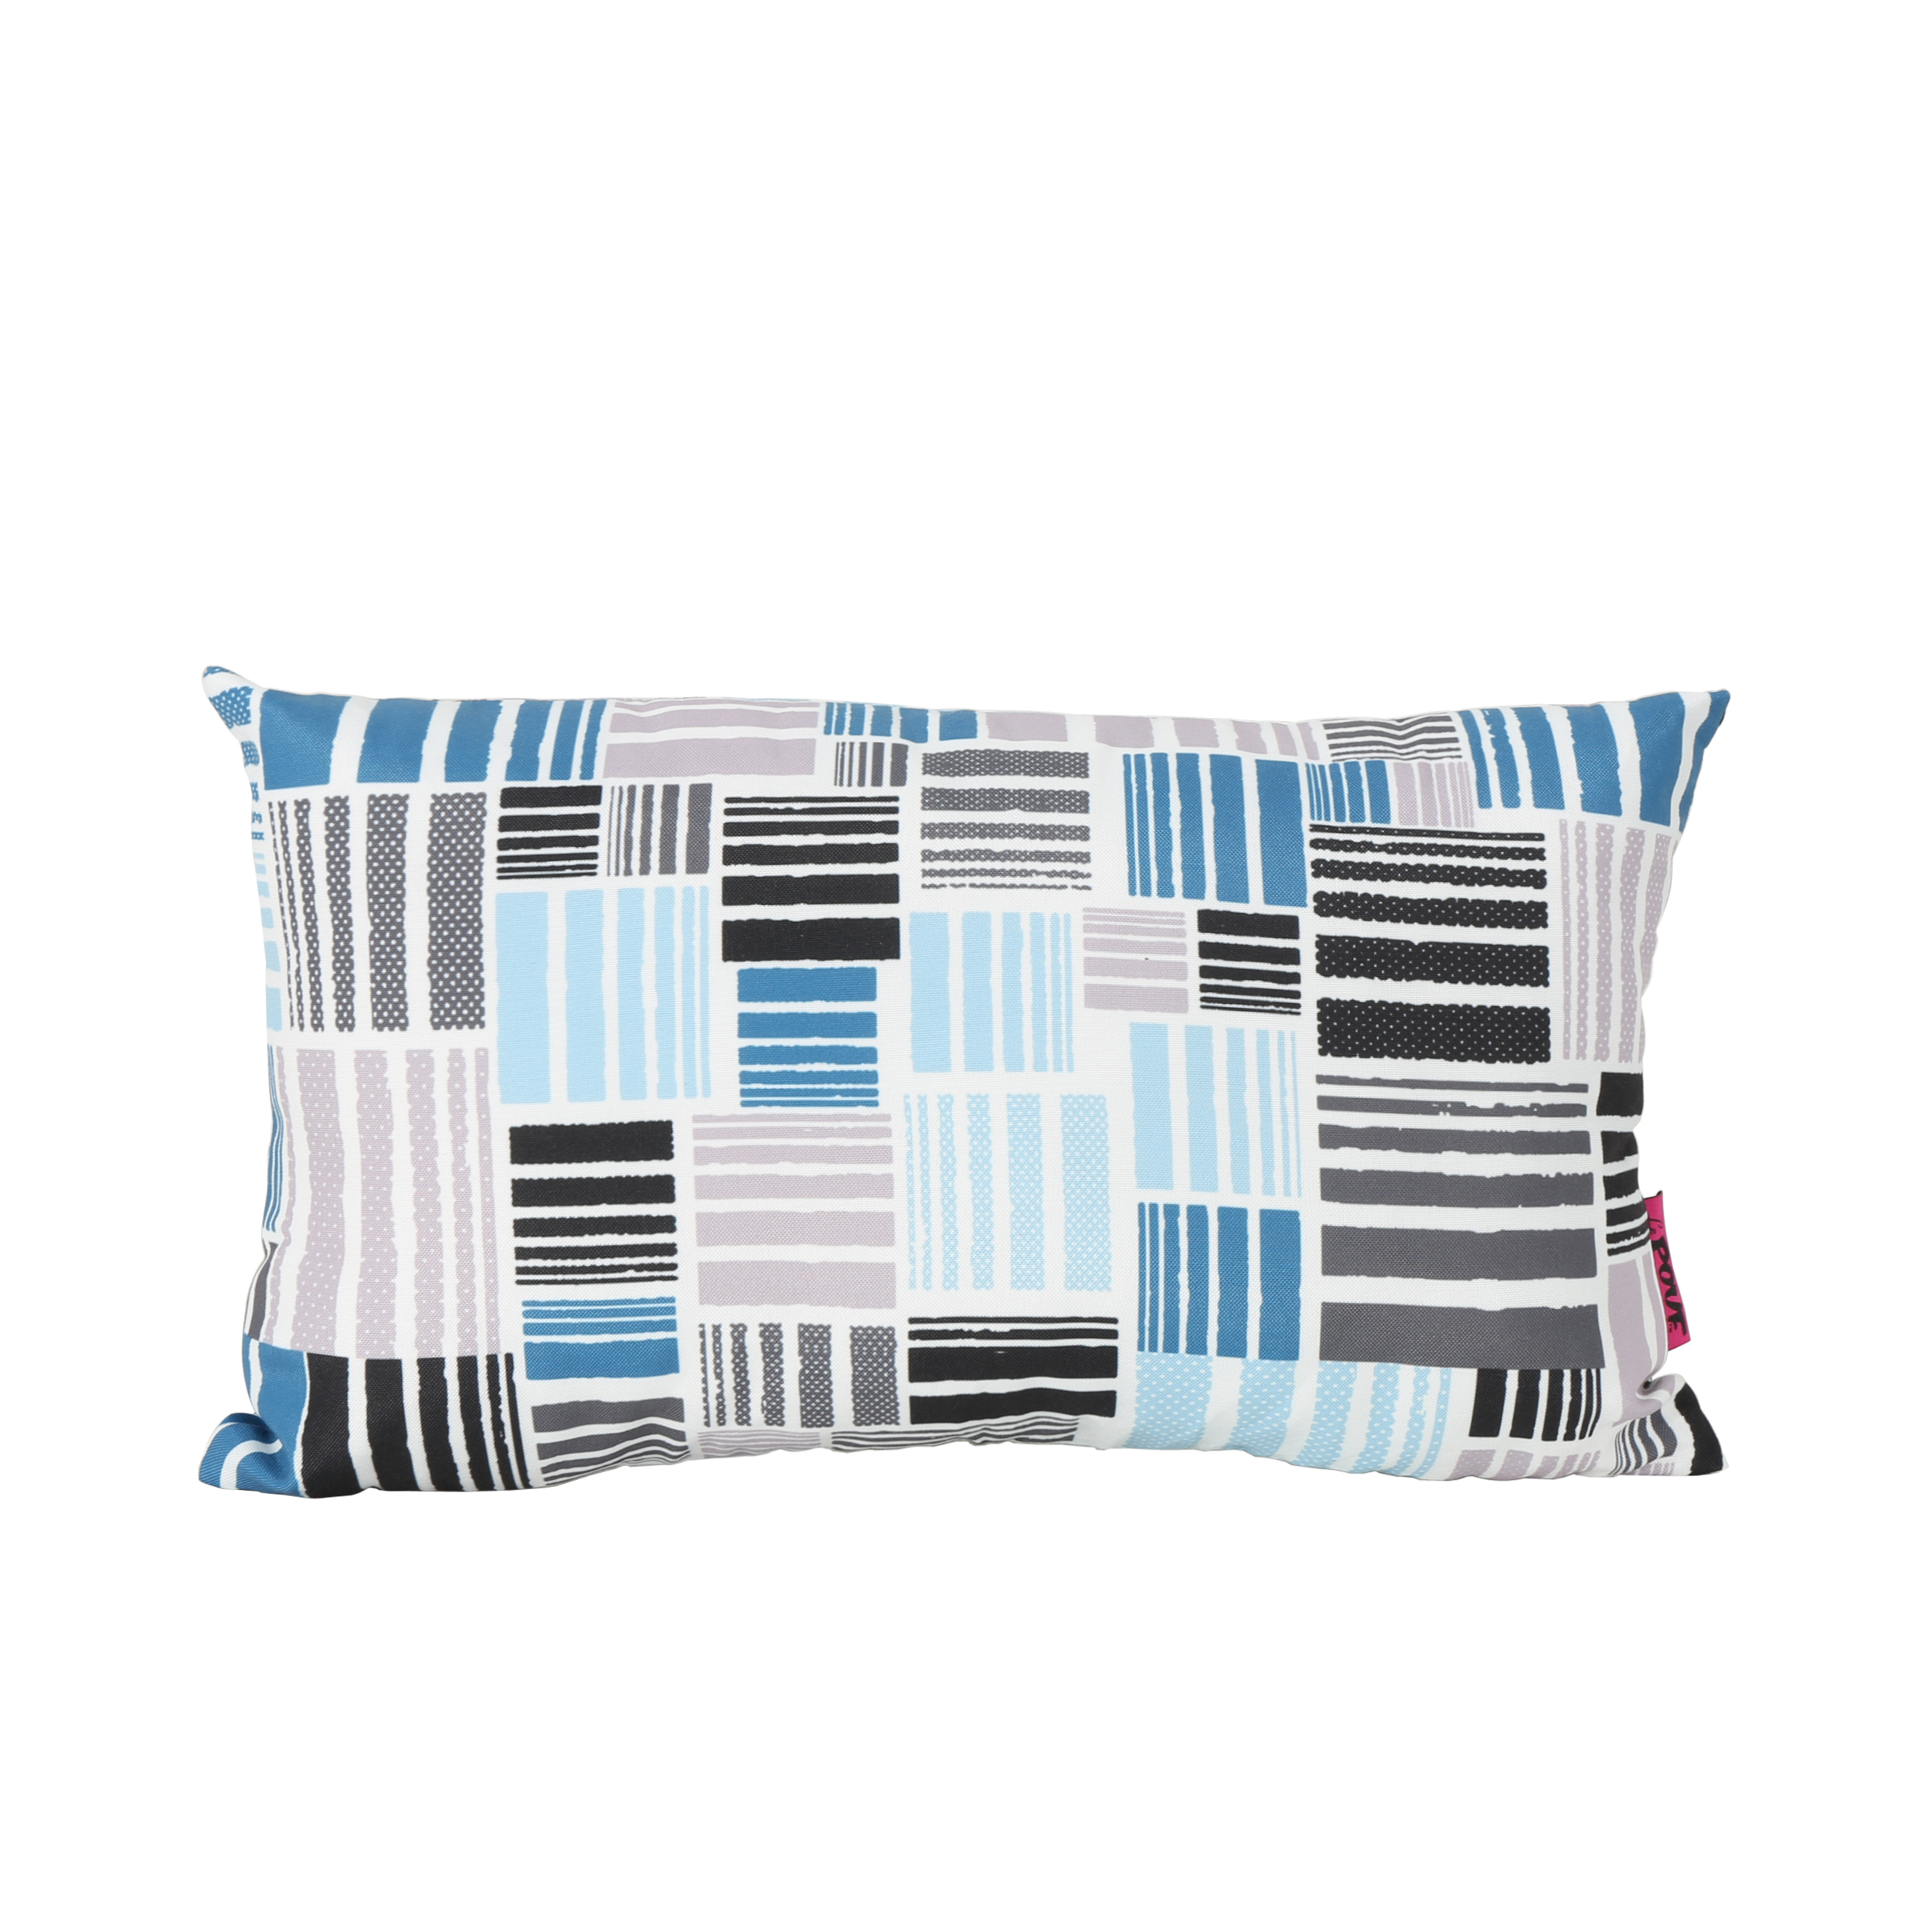 Hedvig Indoor Water Resistant Rectangular Throw Pillow, Patchwork Grey and Blue Abstract... by GDF Studio